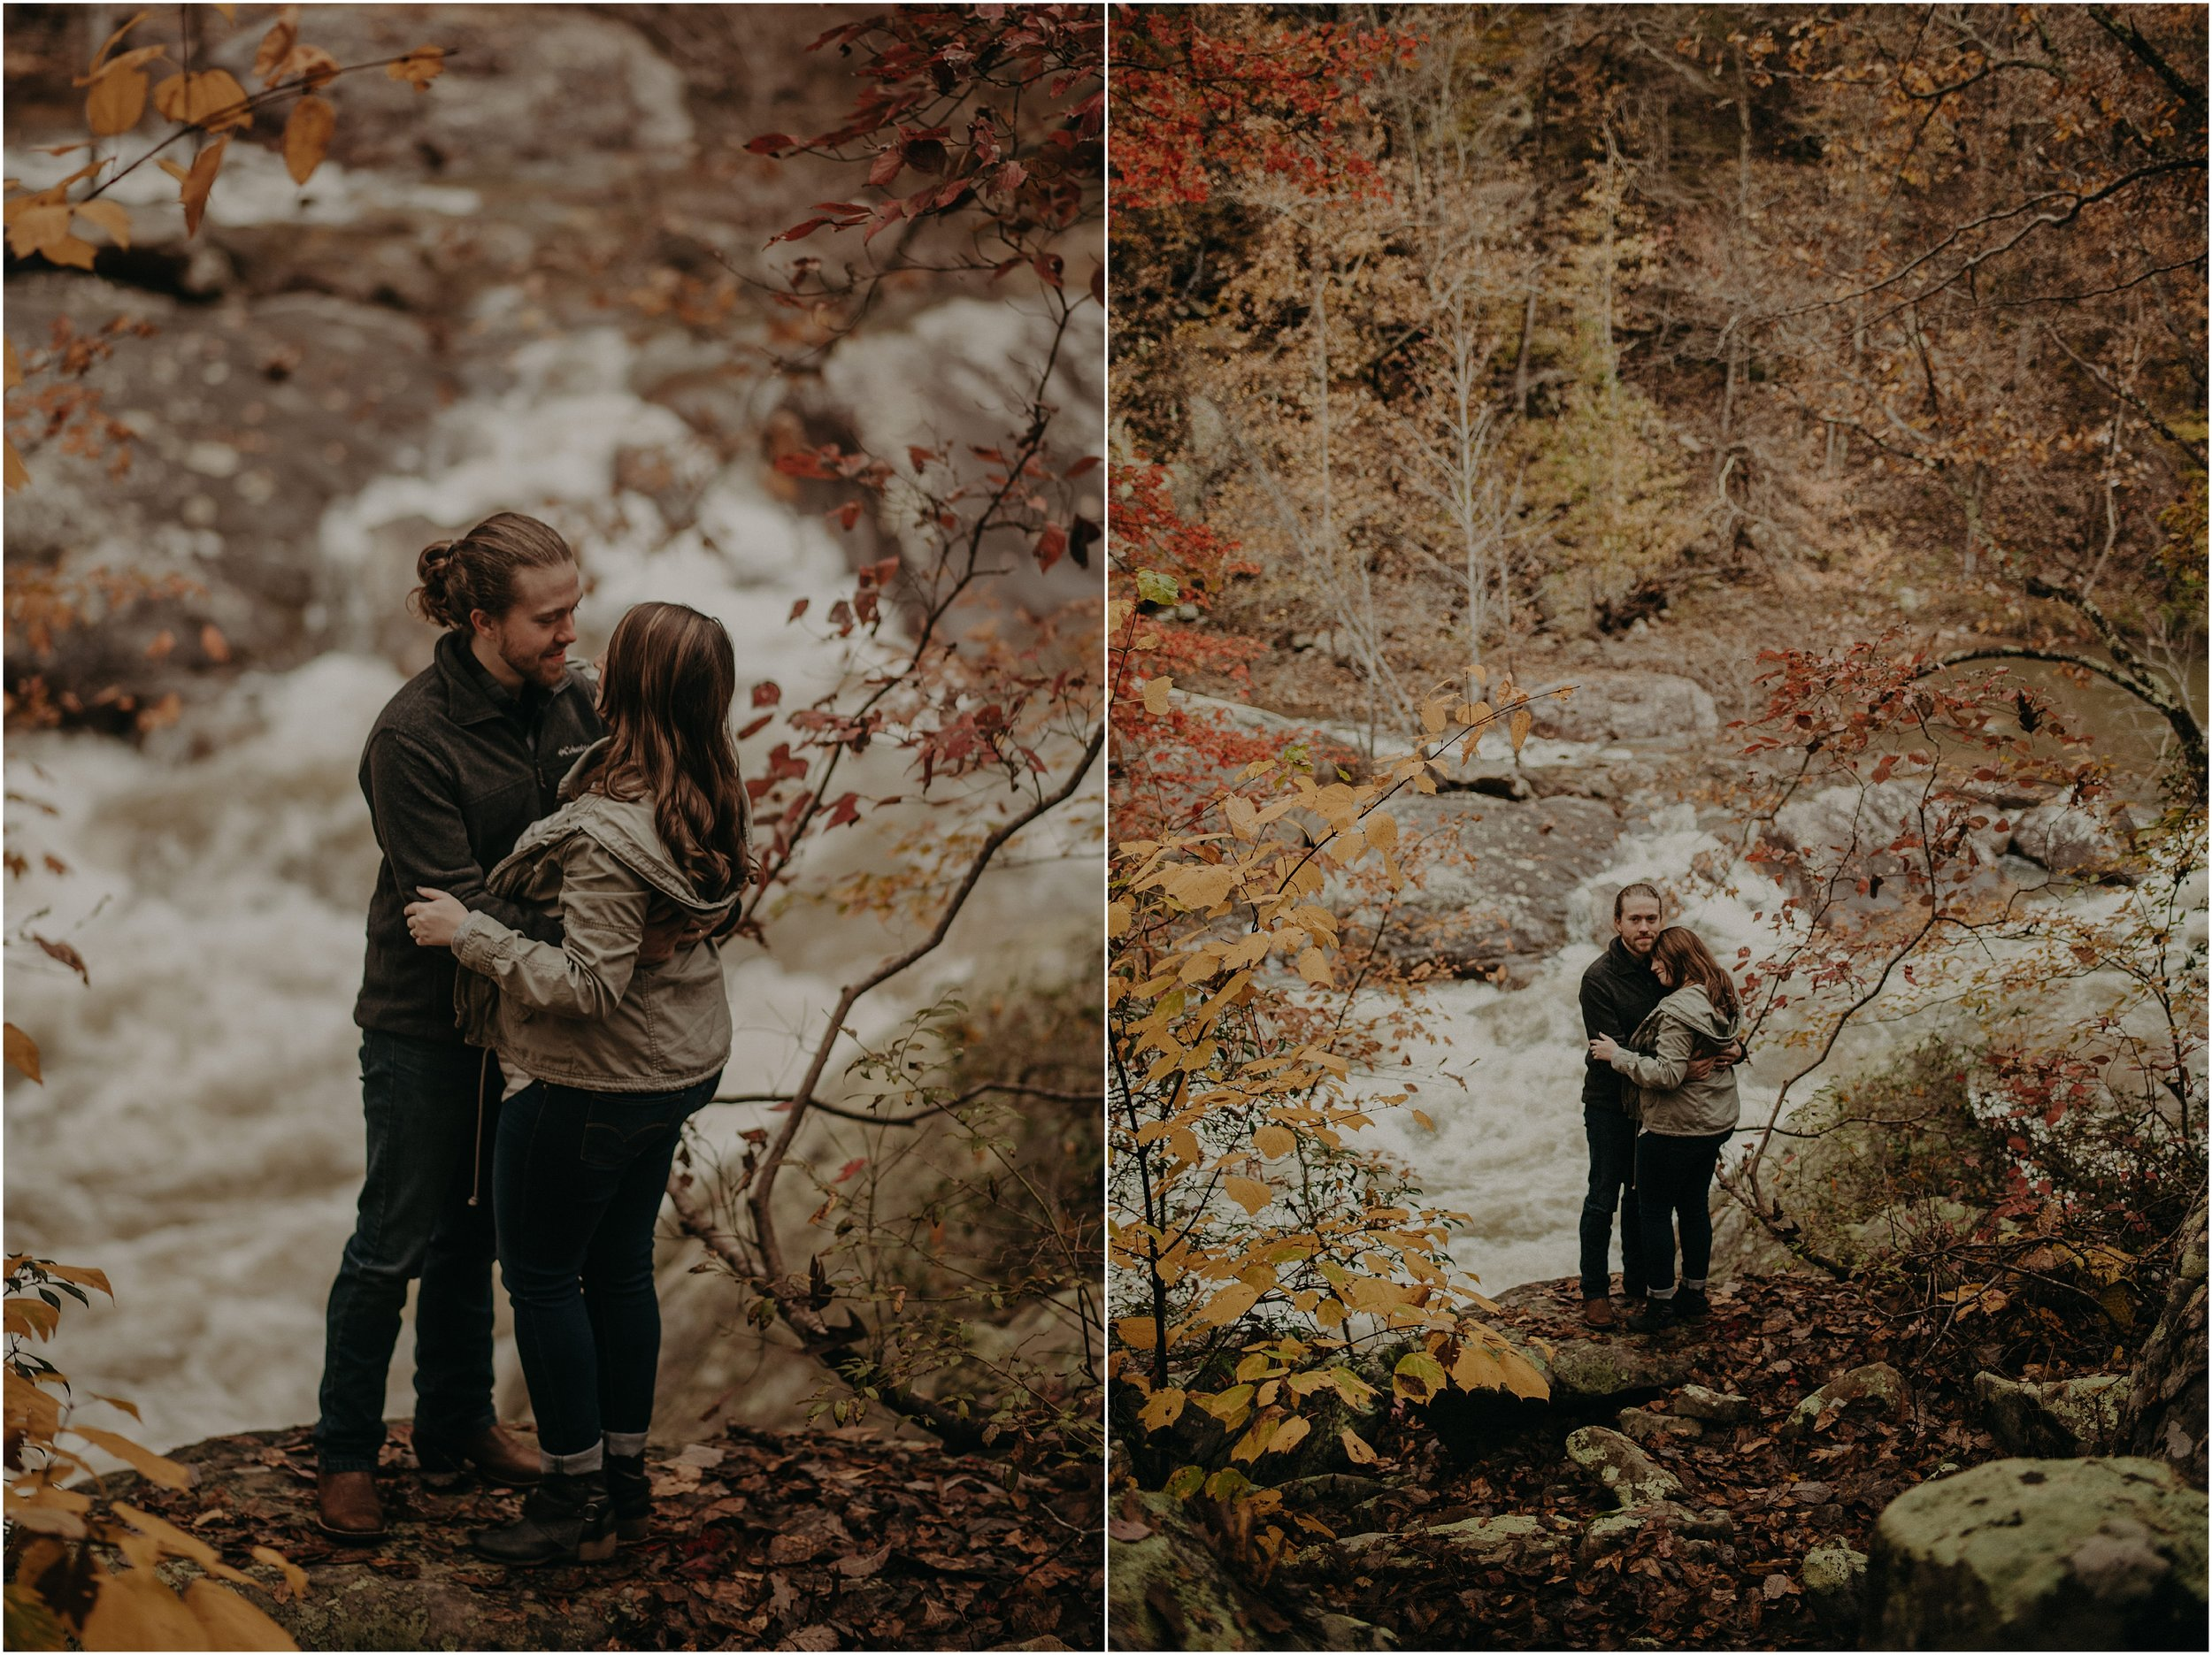 Adventure couple's photo session at Chickamauga Creek Gorge in Soddy Daisy, Tennessee